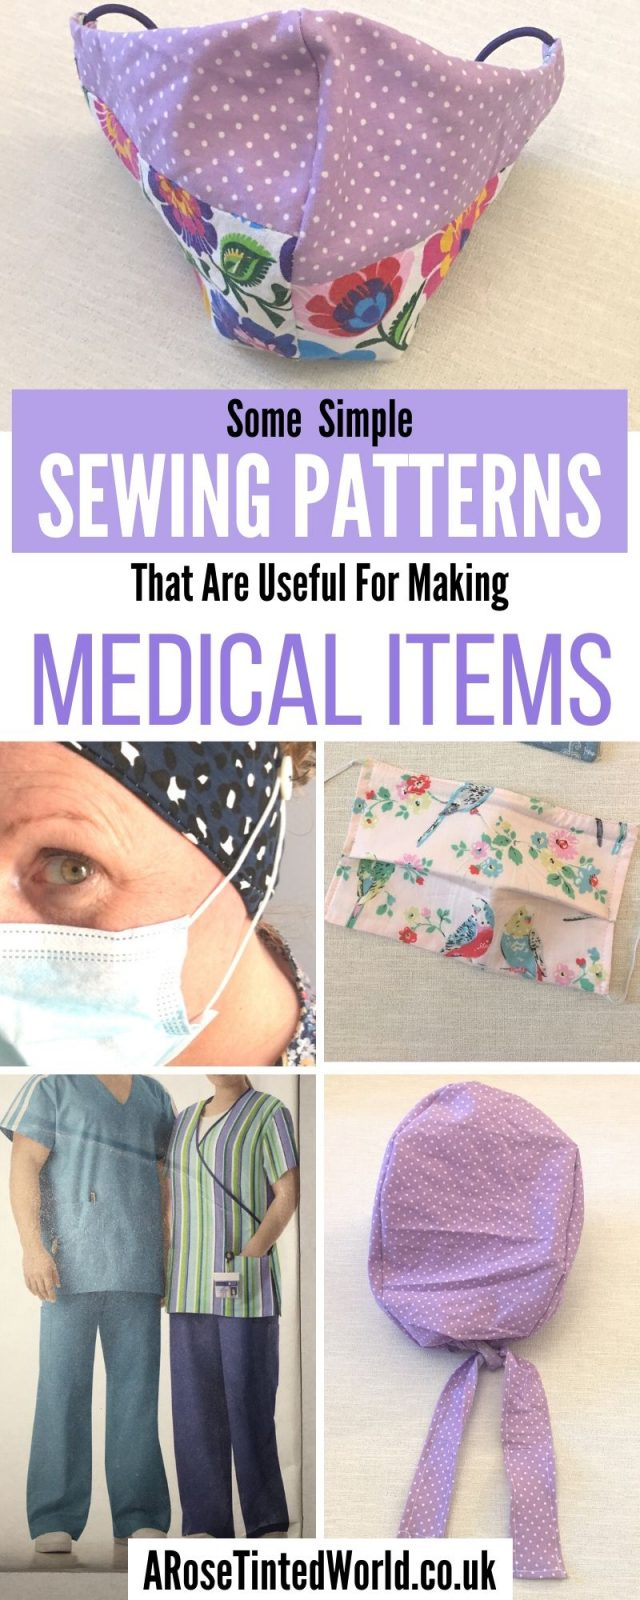 Sewing Projects For Medical Purposes - Suggestions of some medical item patterns that you could sew to help health workers. Face masks, scrubs & hat ideas. #sewing #easysewingprojects #facemaskdiy #clothmask #clothfacemask #surgicalscrubpattern #scrubhatpattern #surgicalscrubs #medicalsewing #medicalsewingpatterns